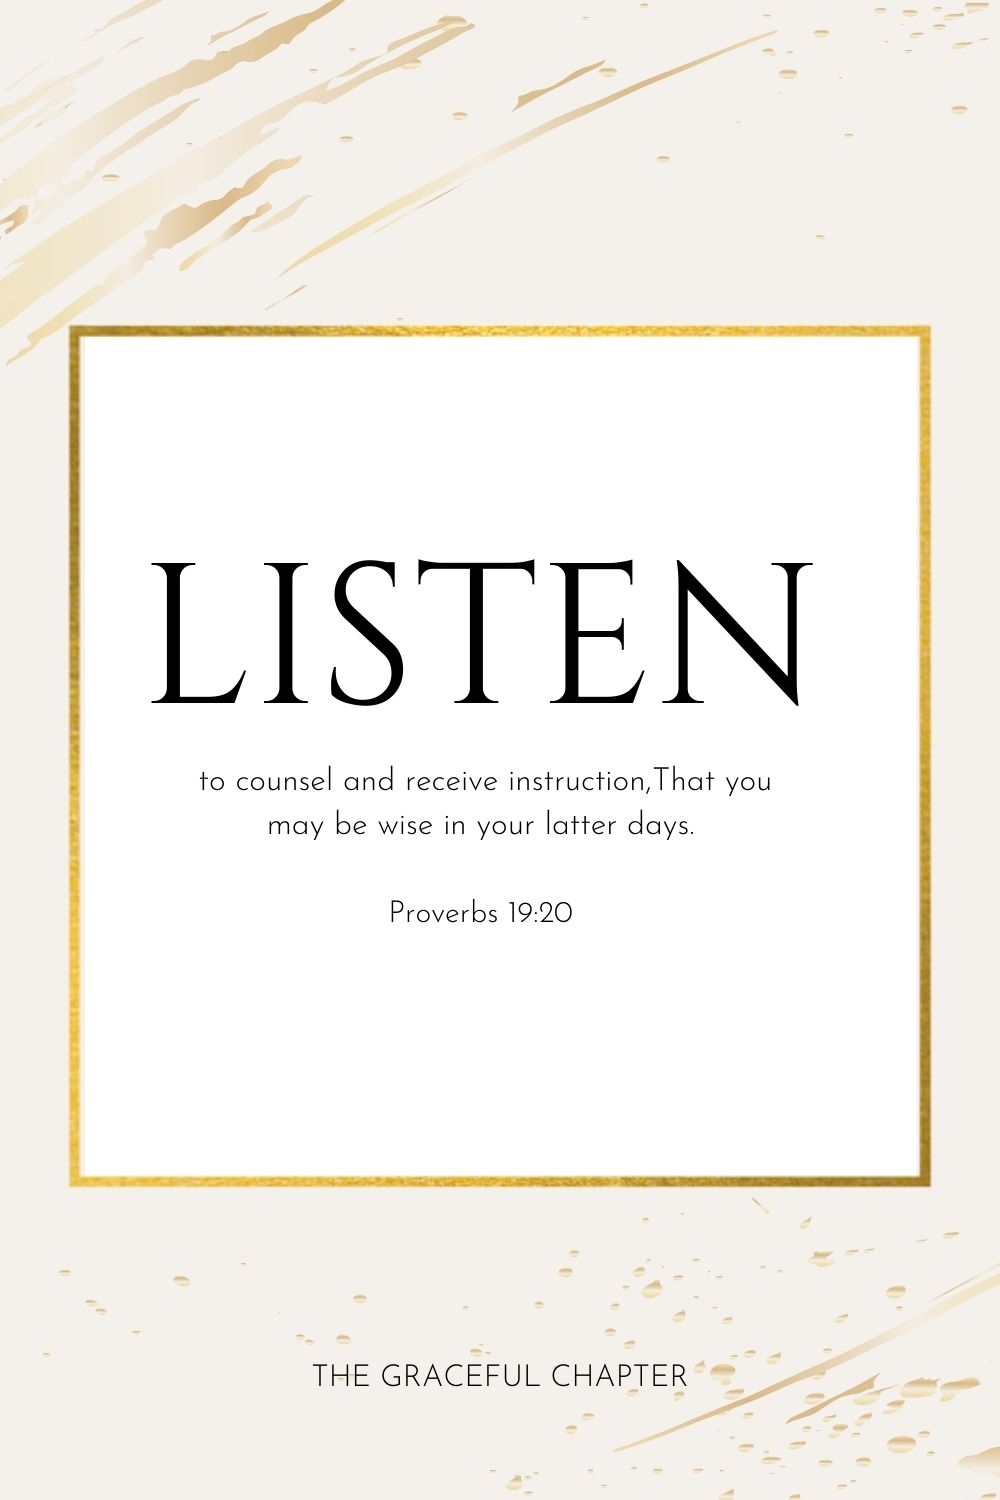 Listen to counsel and receive instruction, That you may be wise in your latter days. Proverbs 19:20